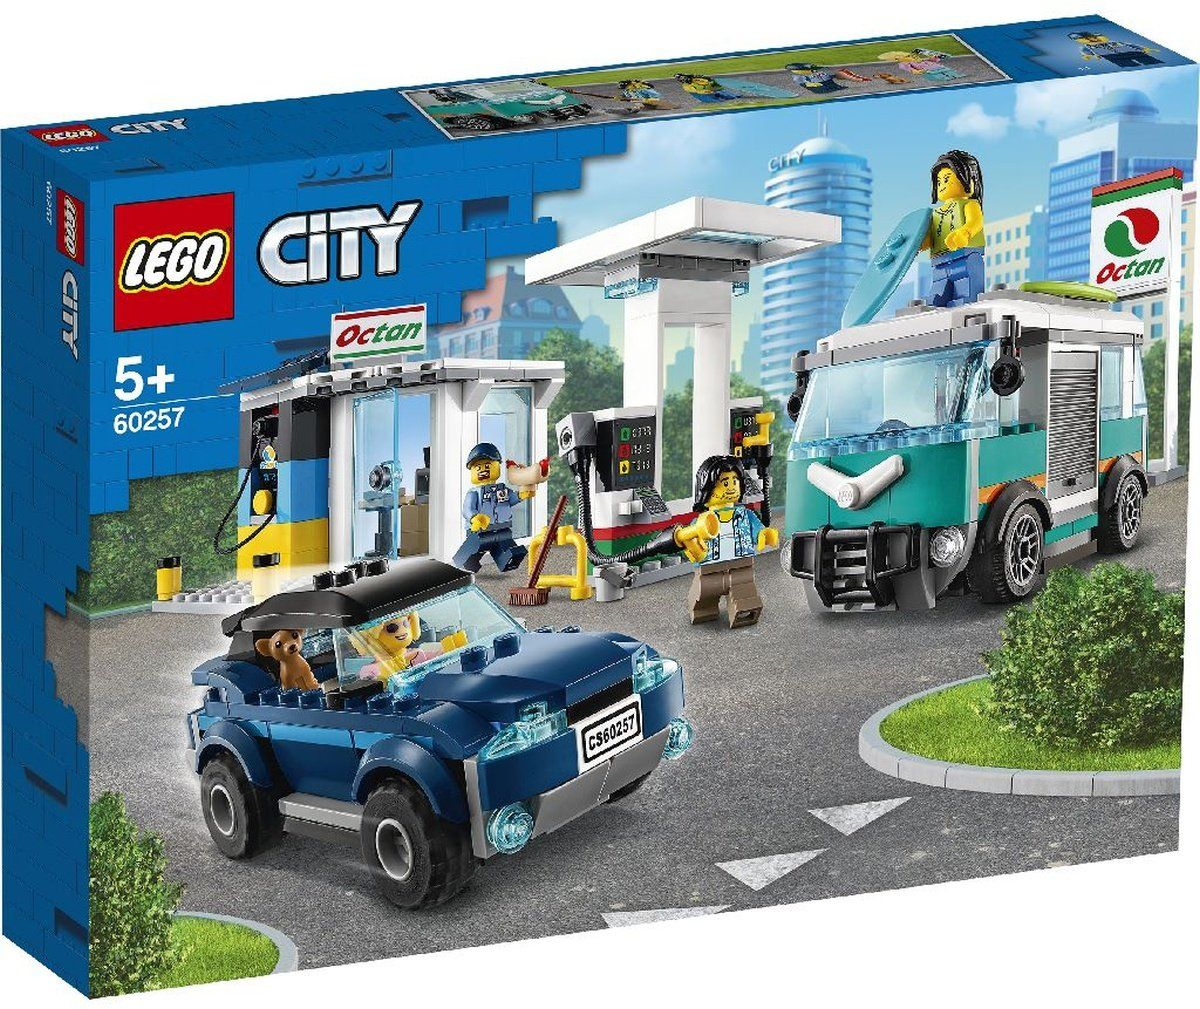 Even More Lego City 2020 Official Set Images The Brick Fan Lego City Service Station Lego City Toys